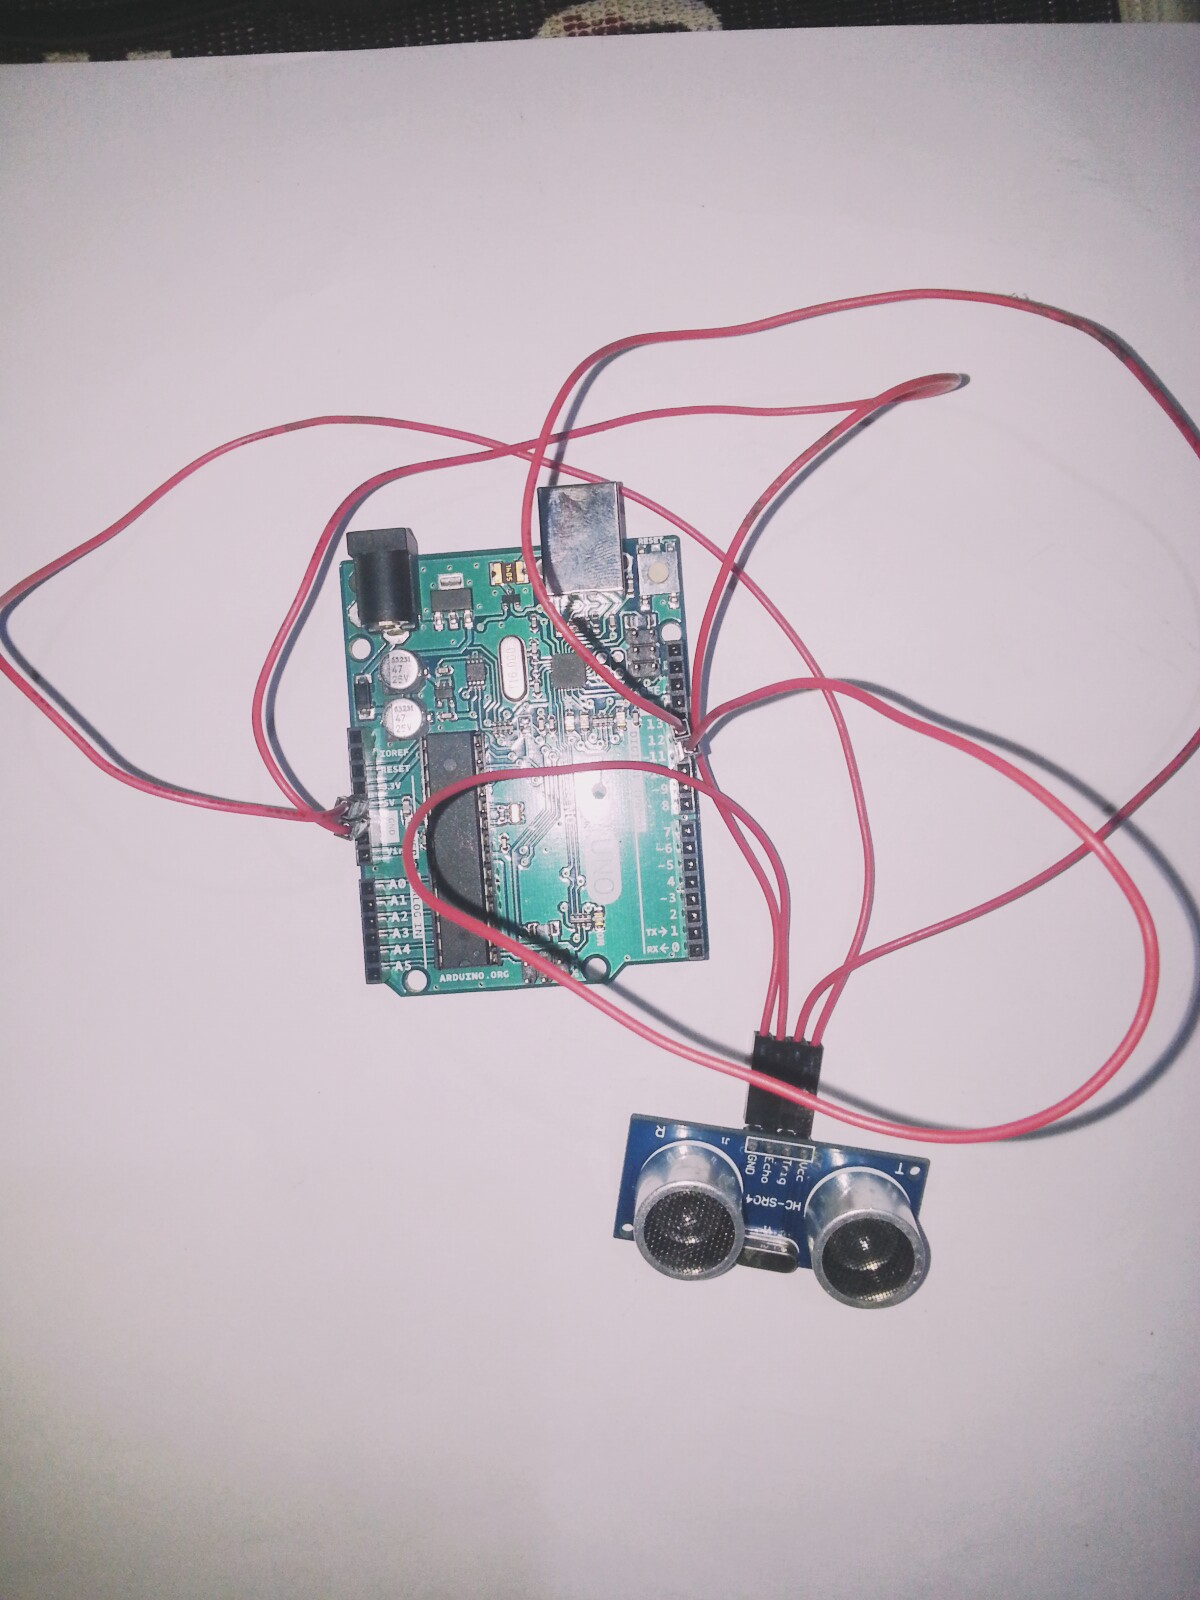 Ultrasonic Range Detector With Arduino Sensor Circuit Consists Of A Set Receiver And To